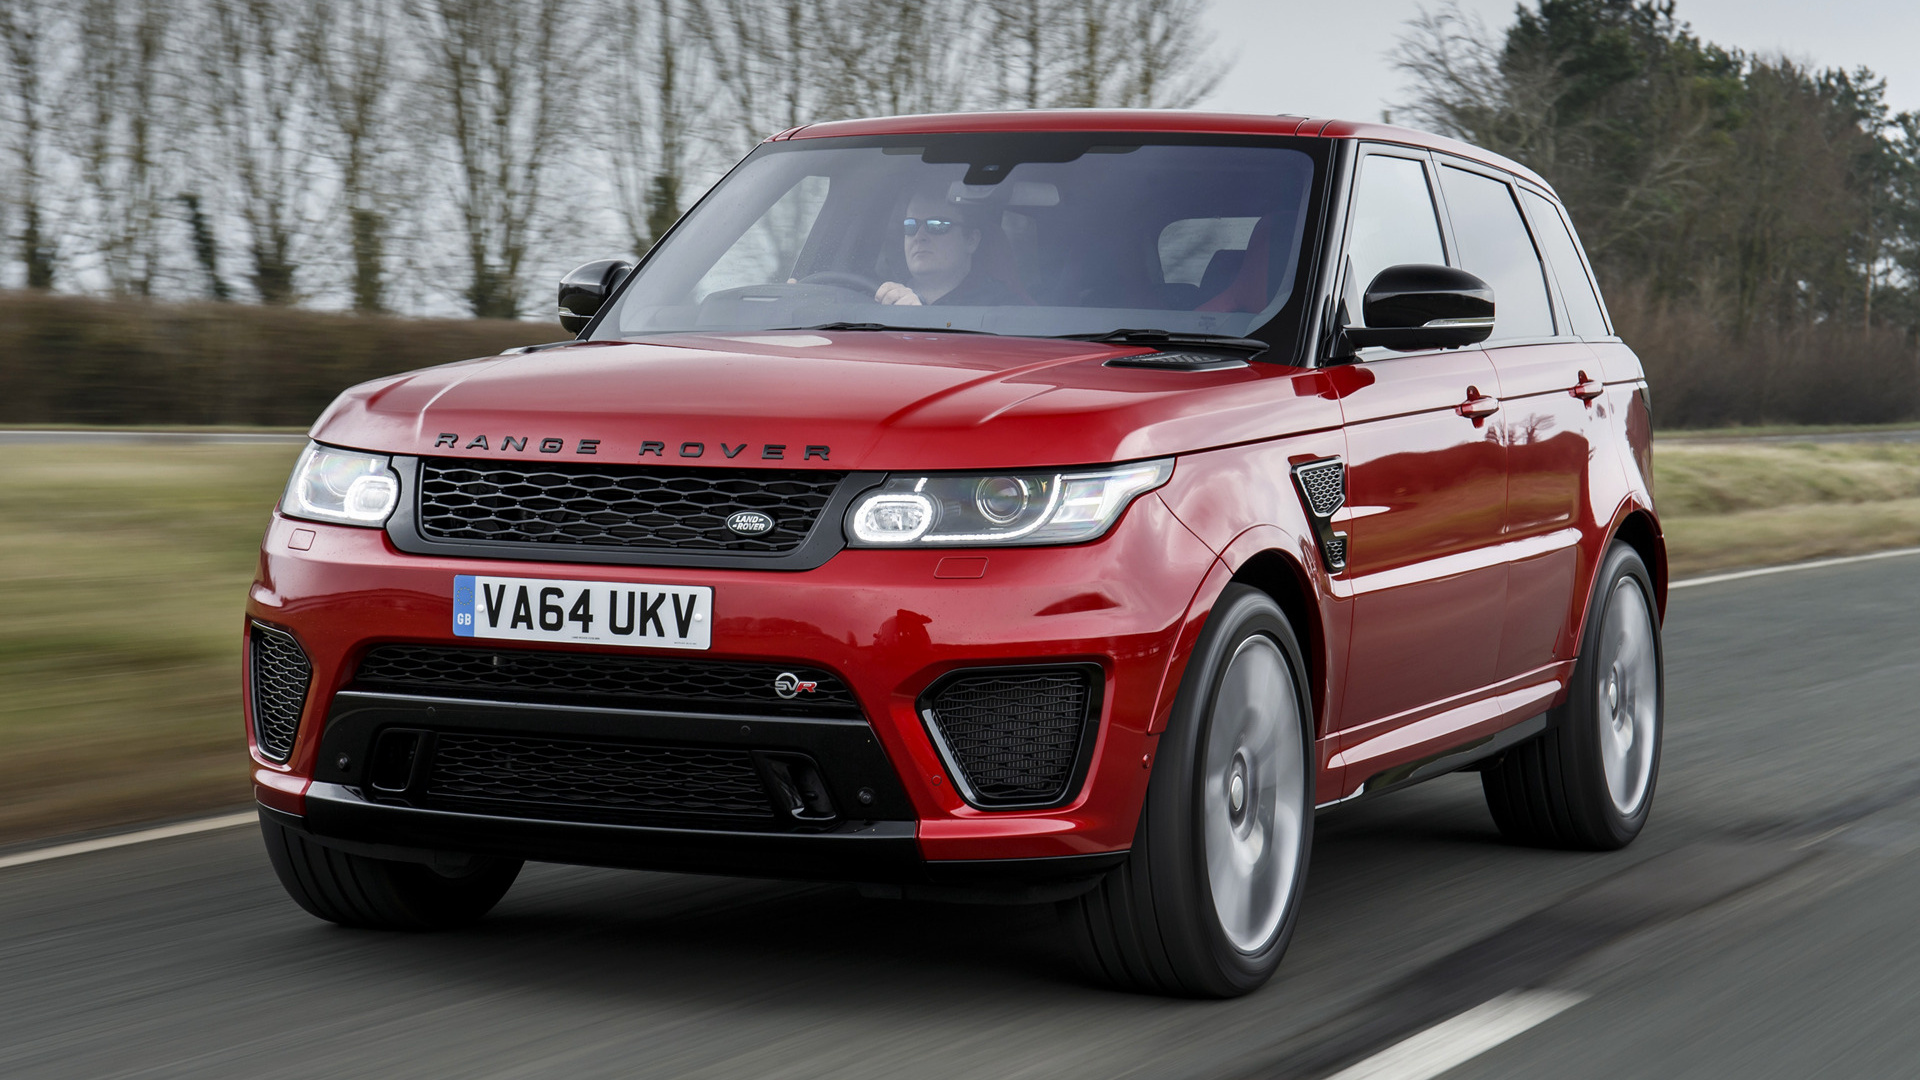 Range Rover Sport Svr 2015 Uk Wallpapers And Hd Images